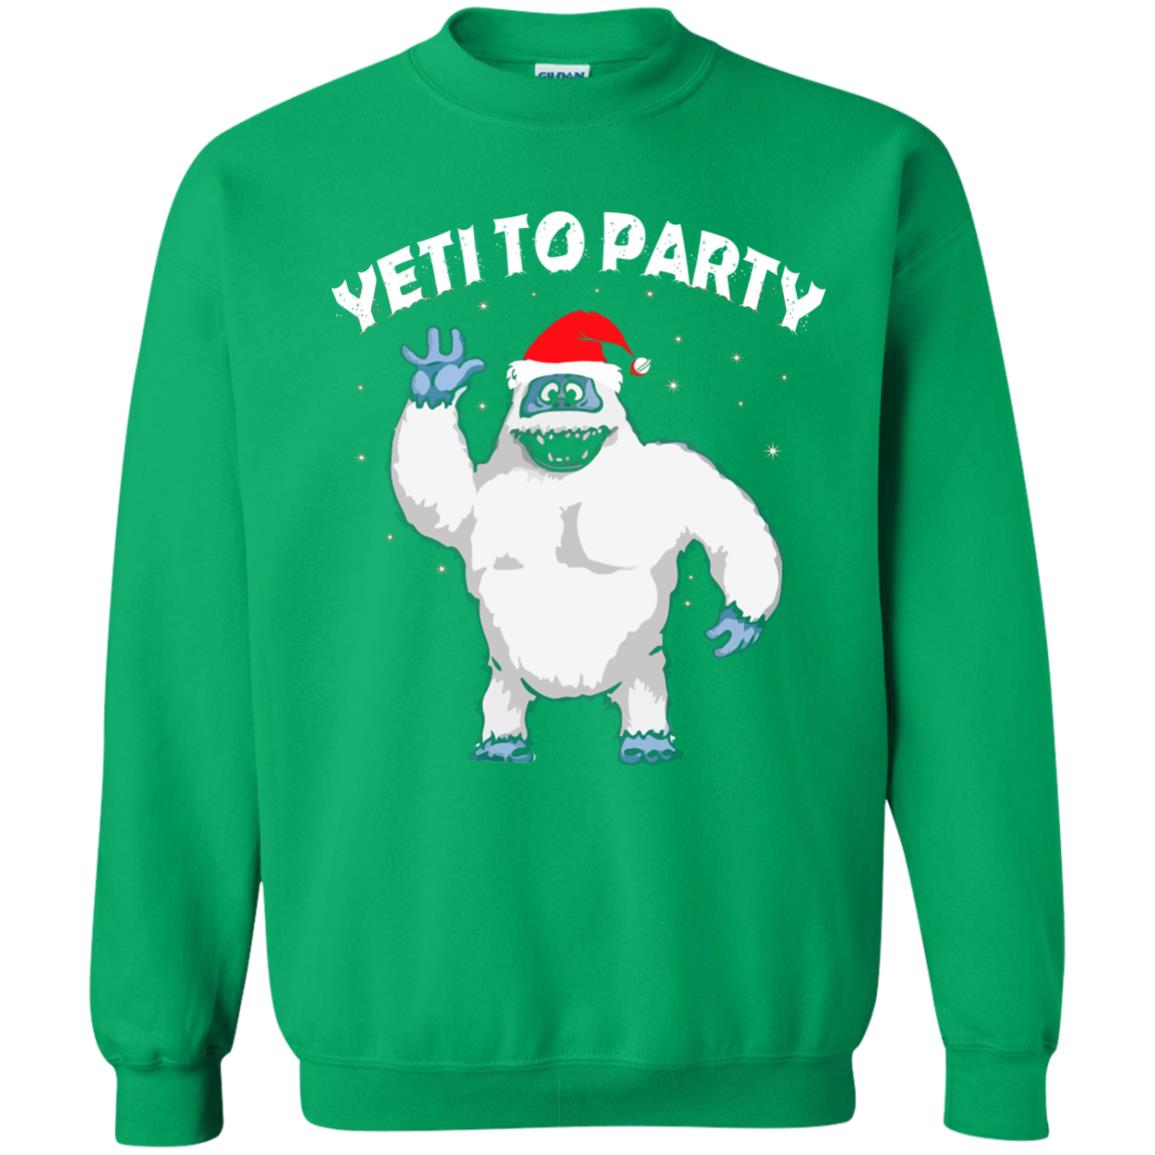 image 36 - Yeti to Party Christmas Sweater, Hoodie